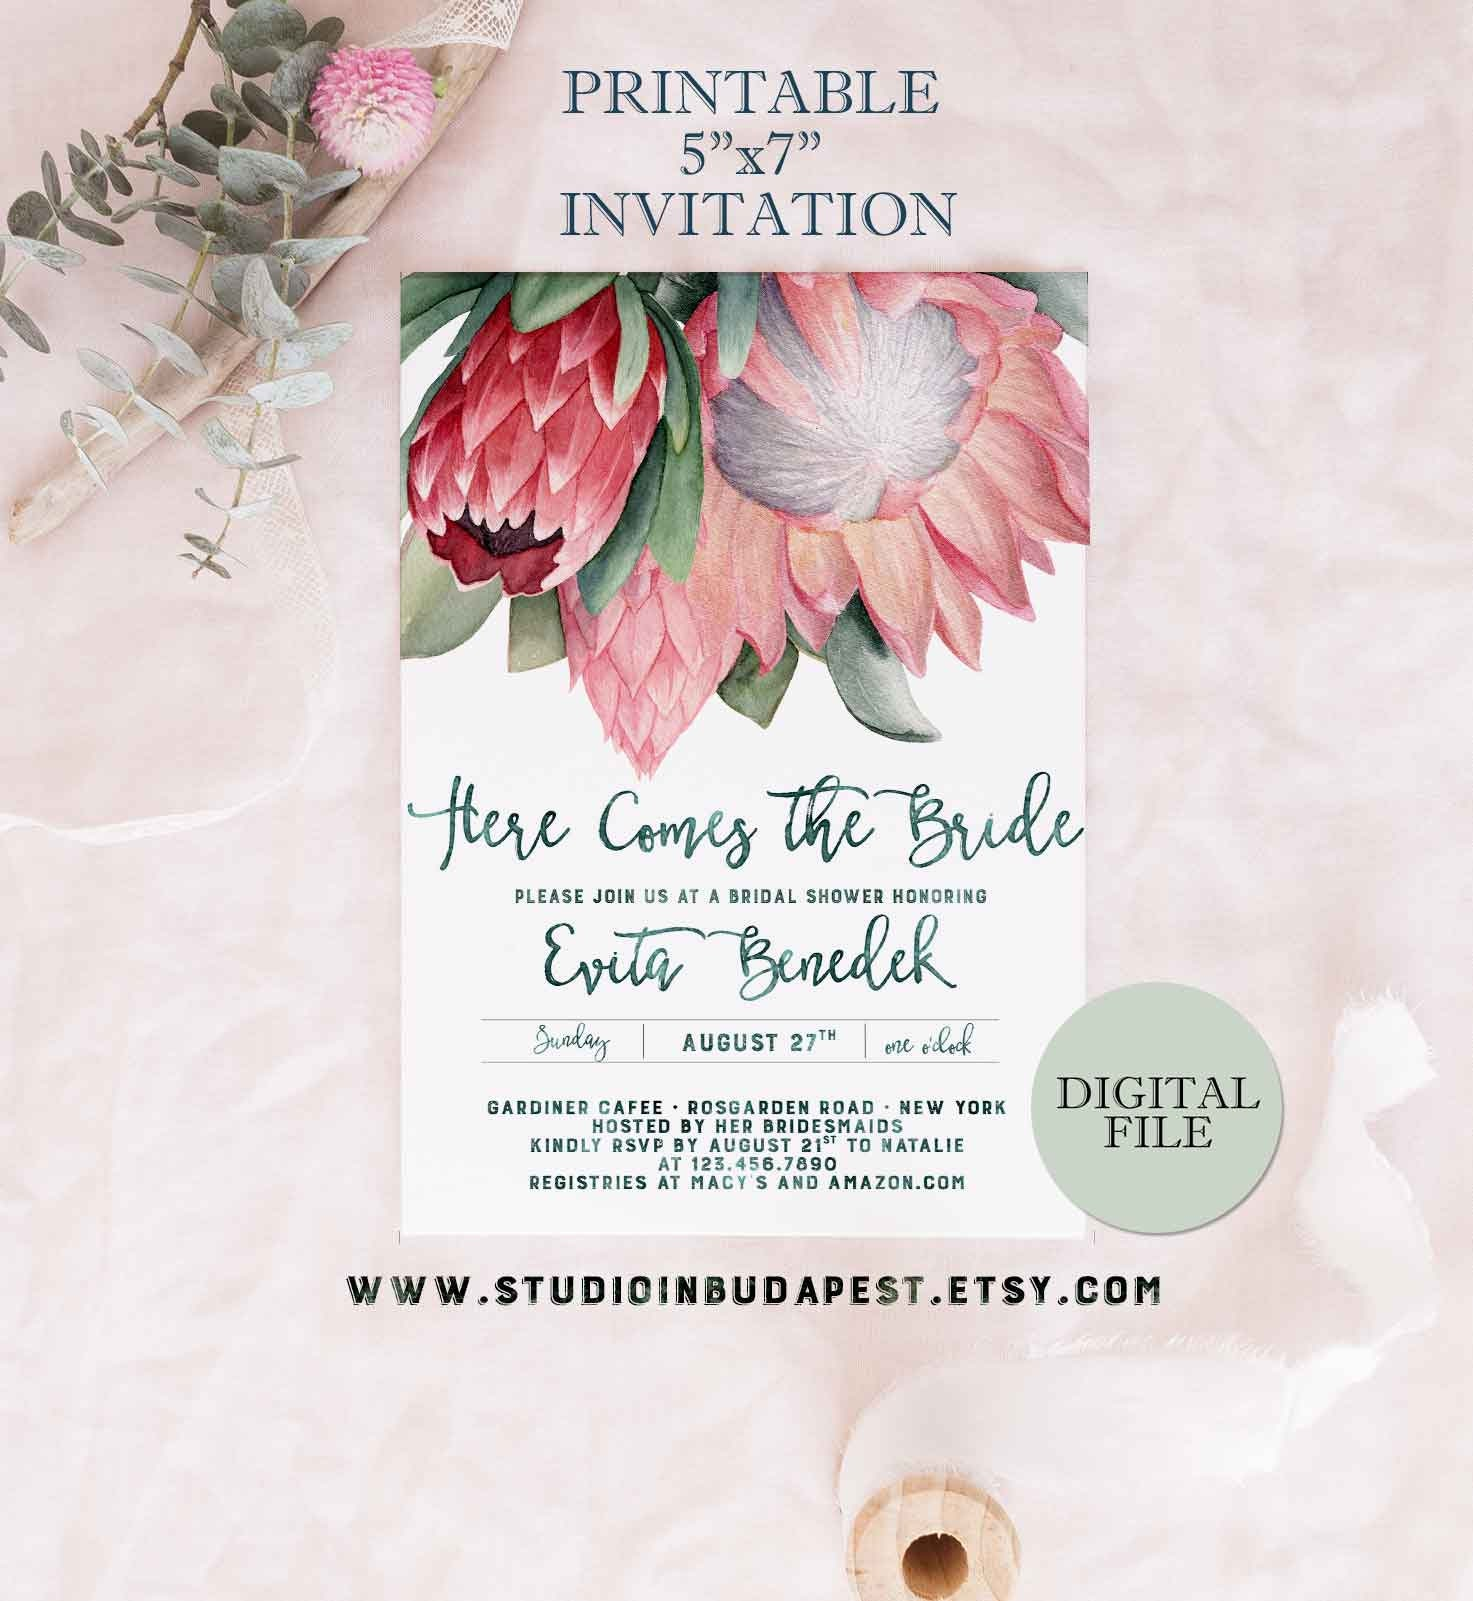 protea bridal shower invitation printable bachelorette party With wedding invitations with protea